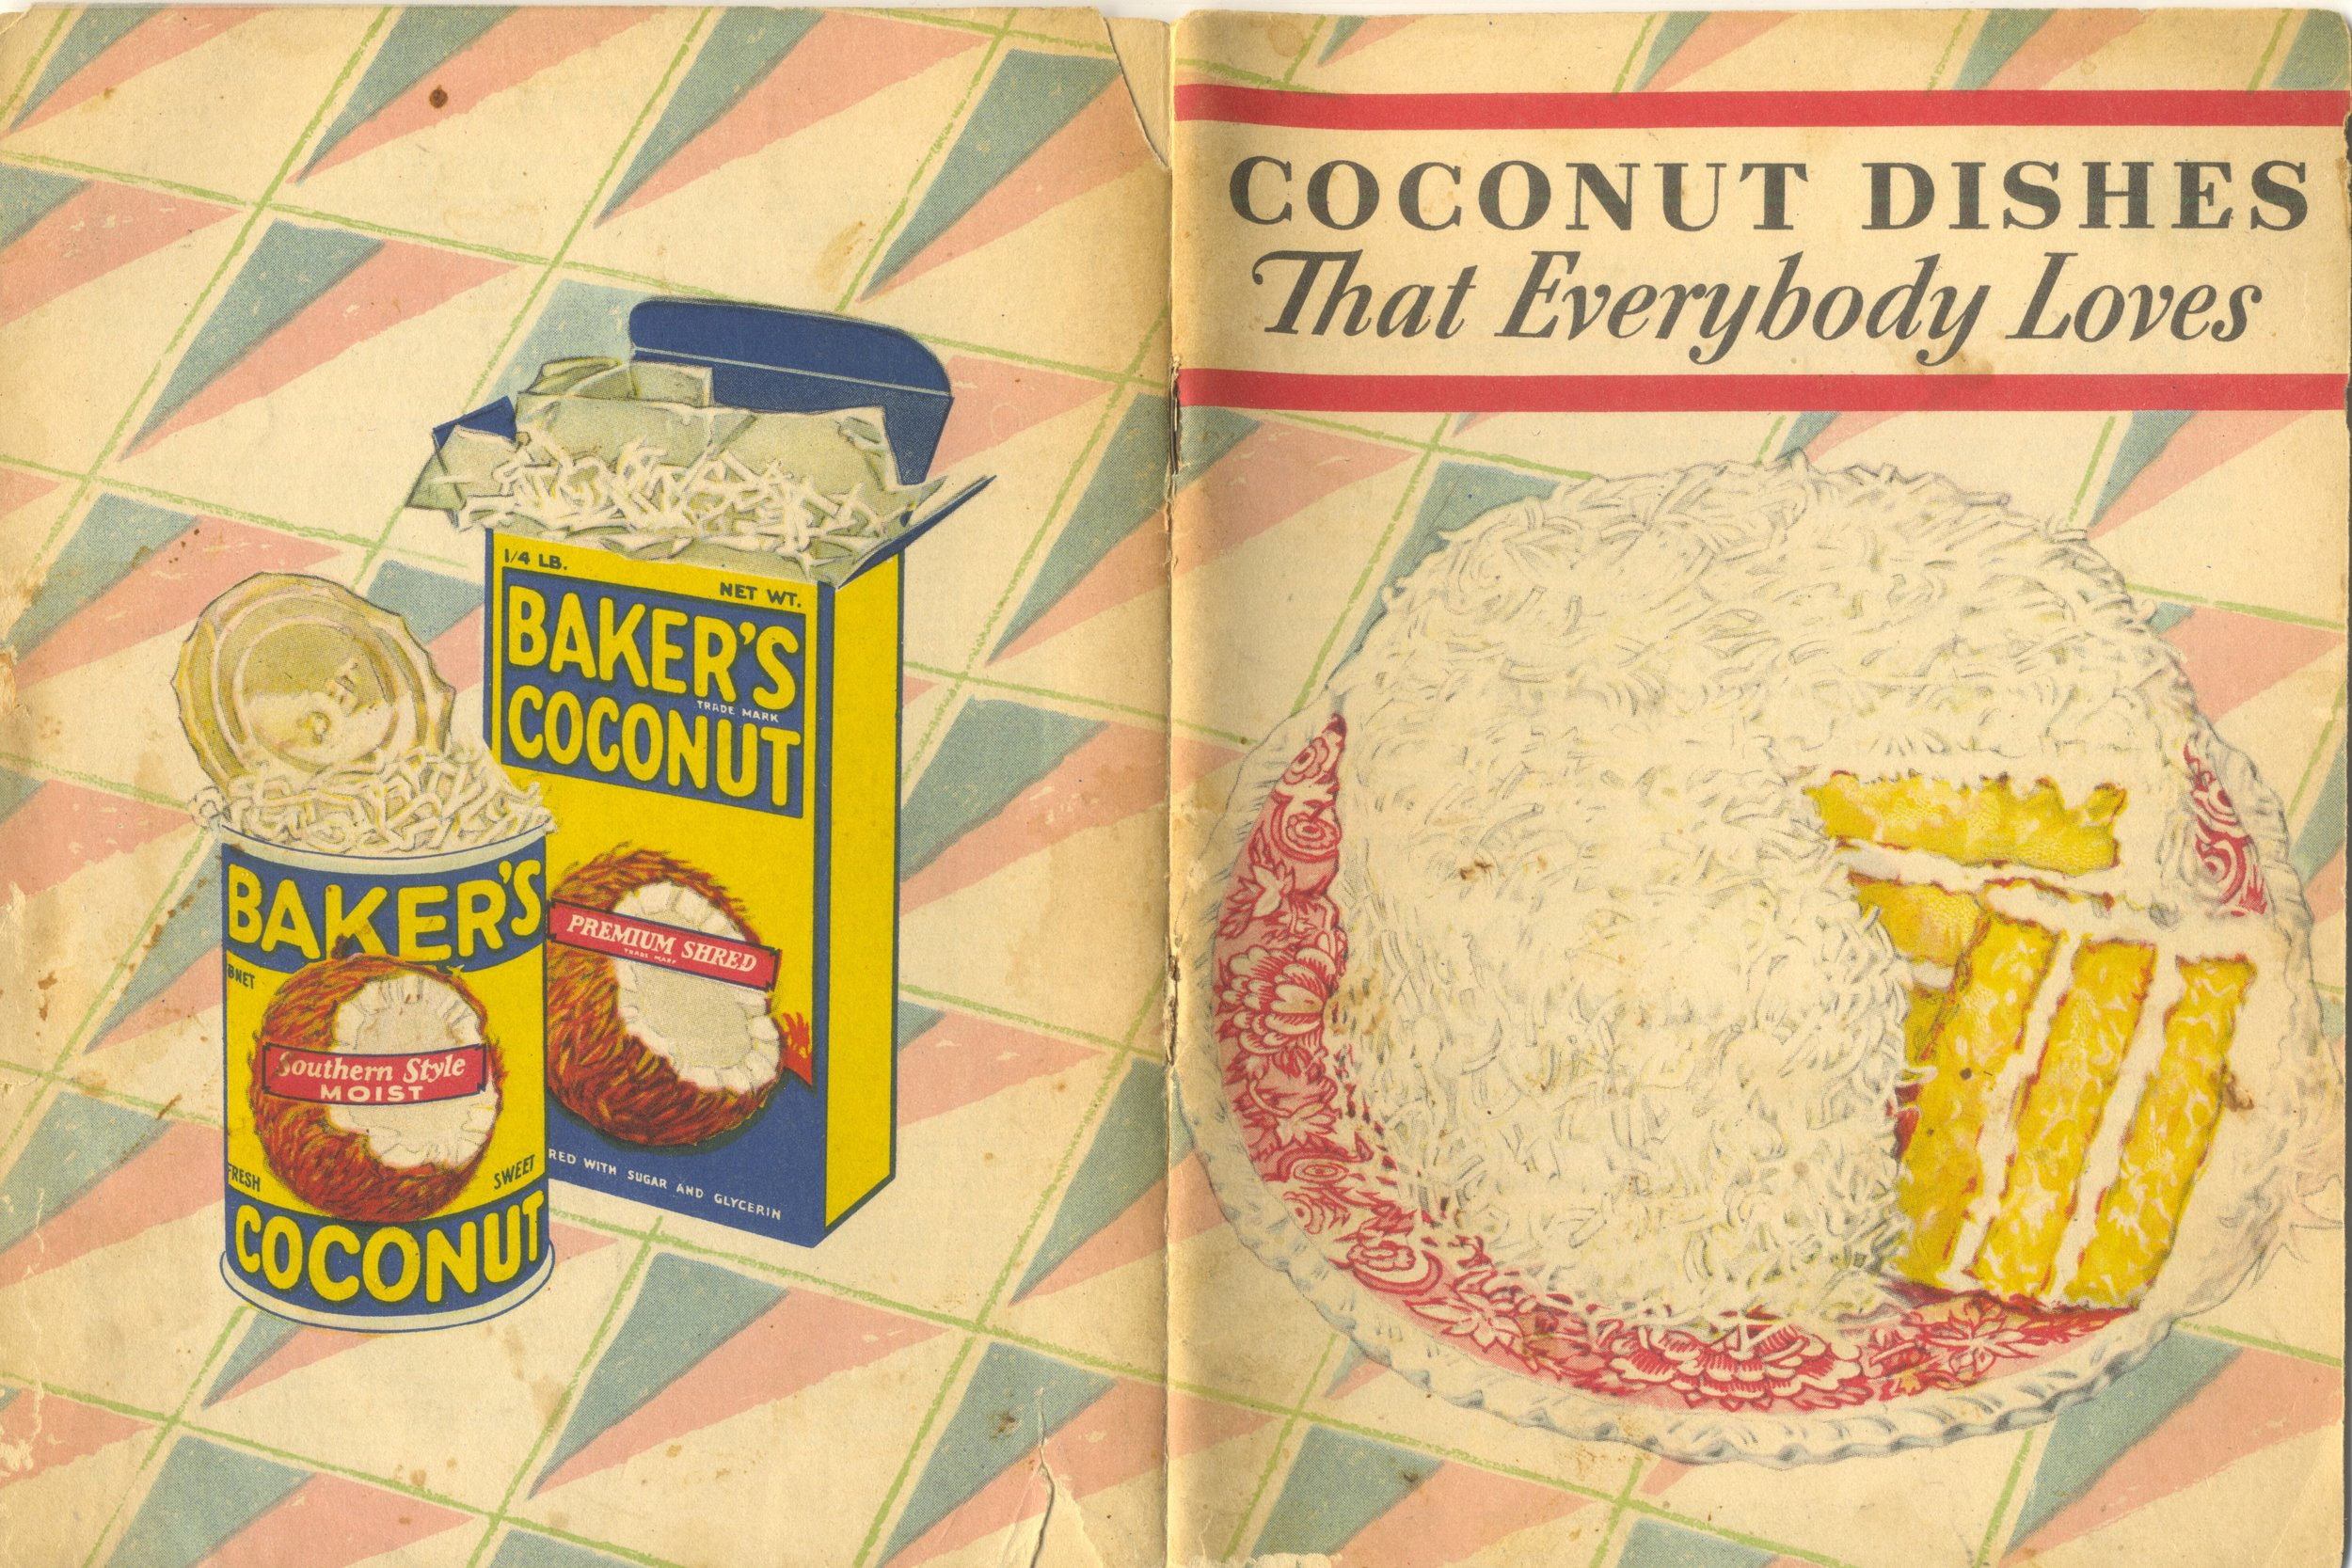 1931 Coconut Dishes That Everybody Loves